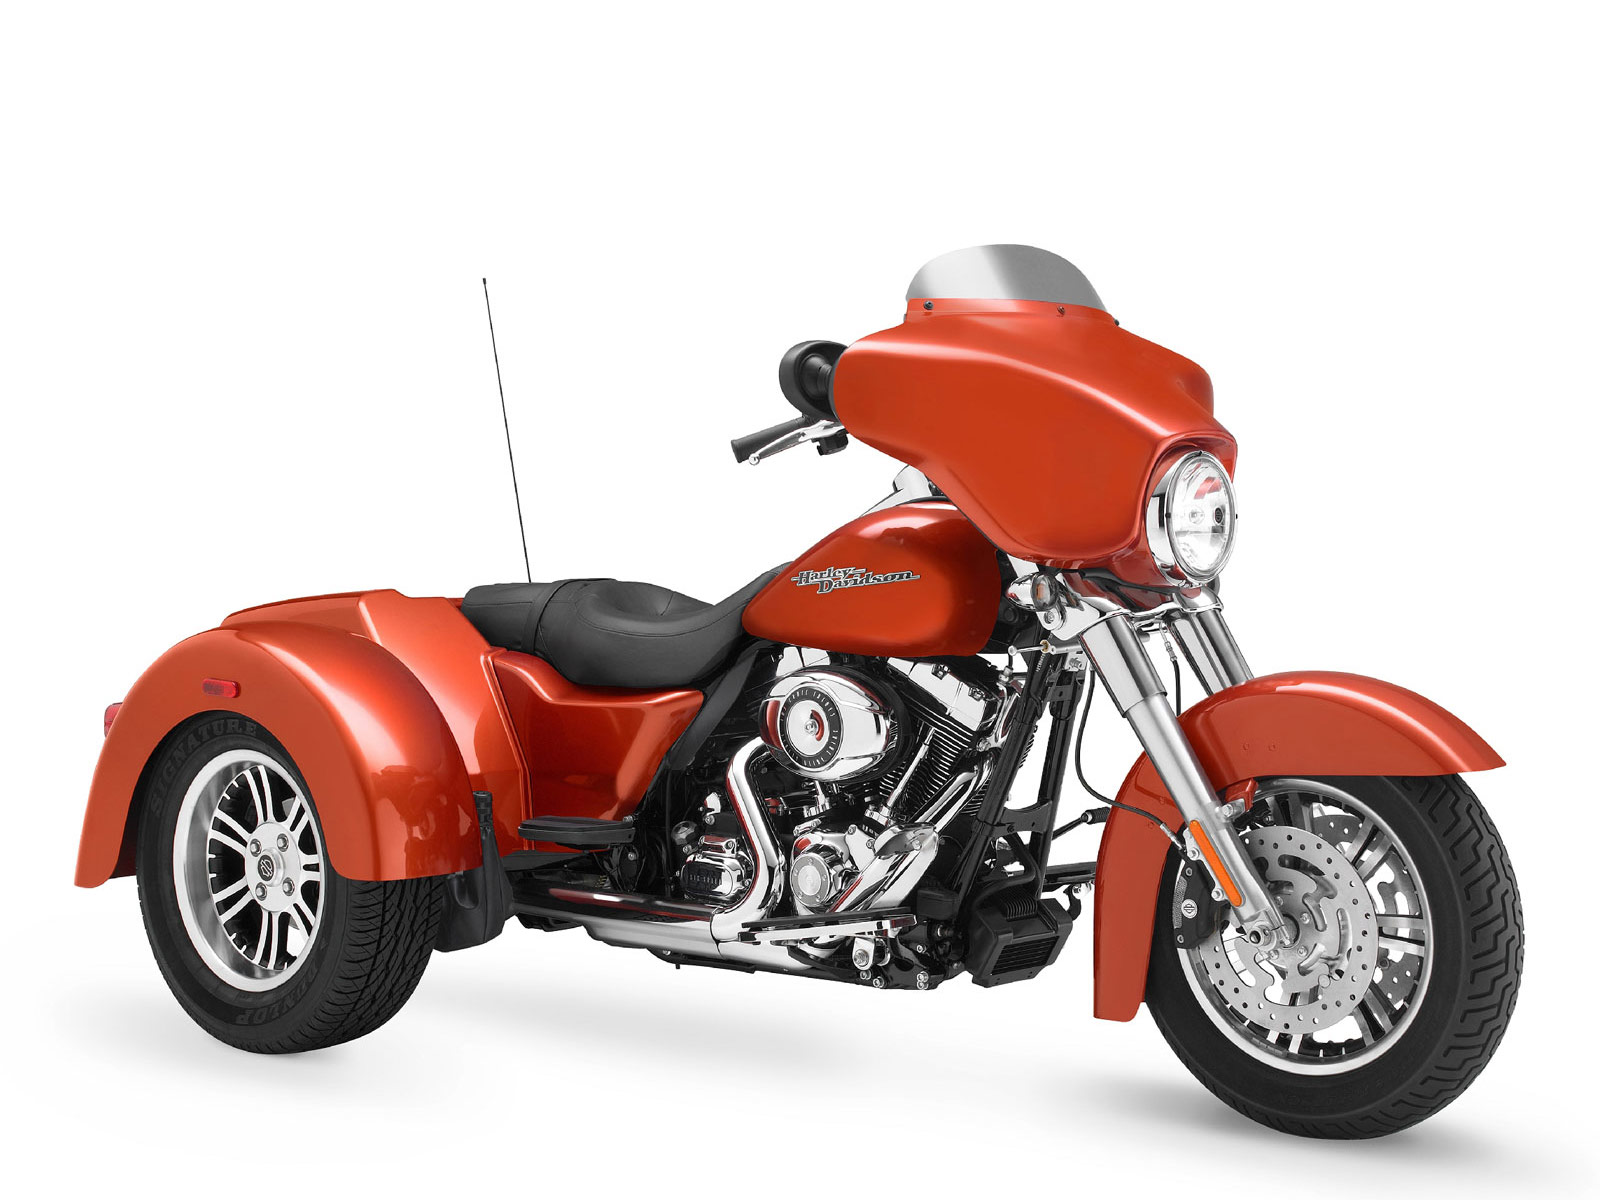 2011 Flhxxx Street Glide Trike Harley on Auto Insurance Quotes Online